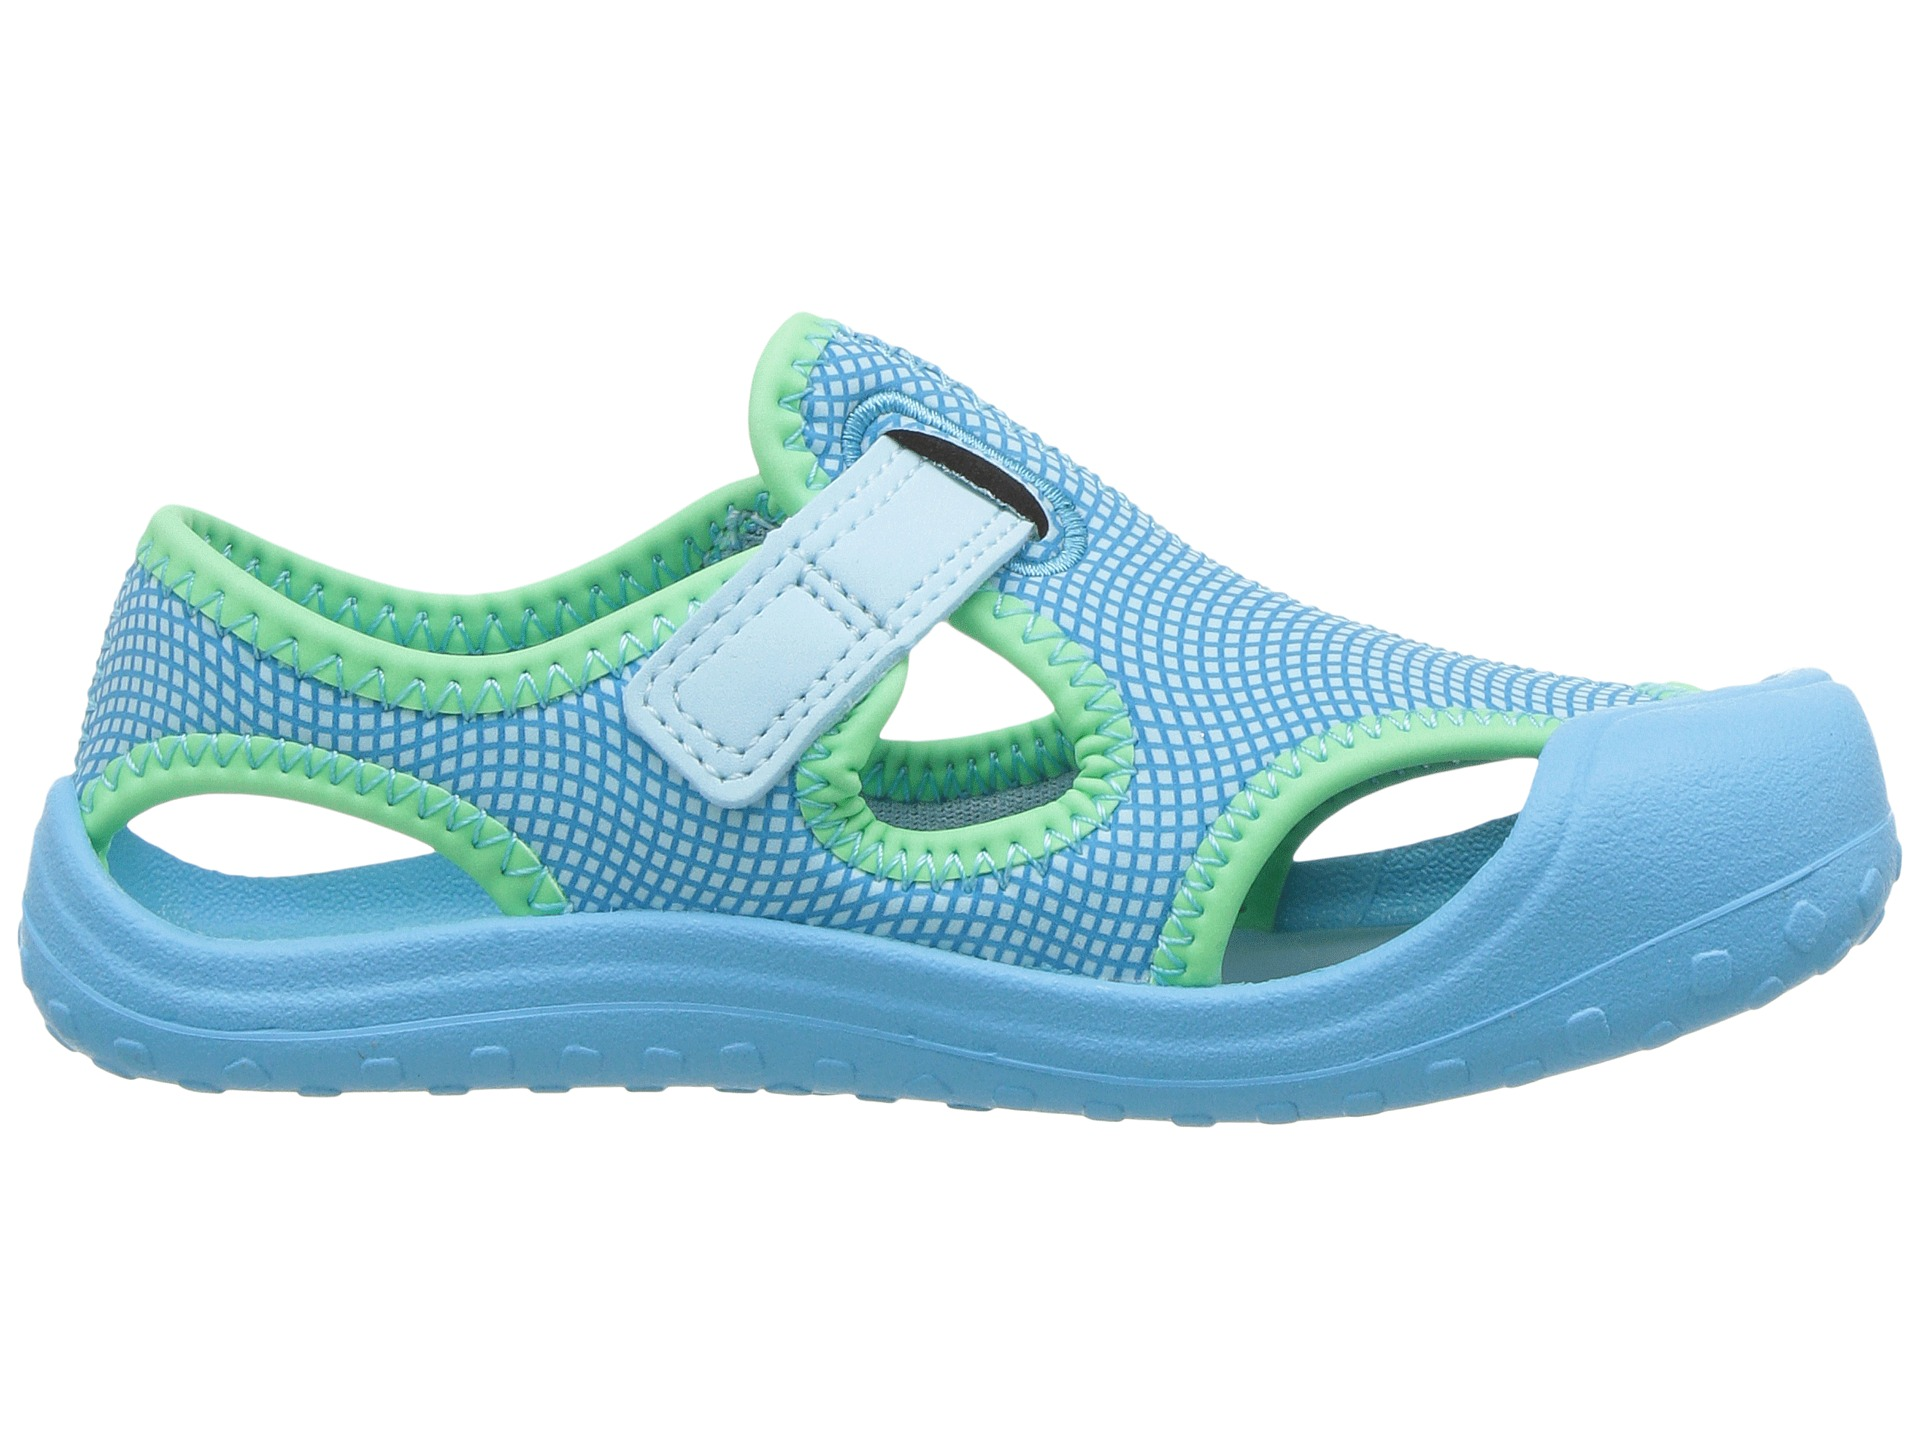 Nike Kids Sunray Protect (Infant/Toddler) at Zappos.com